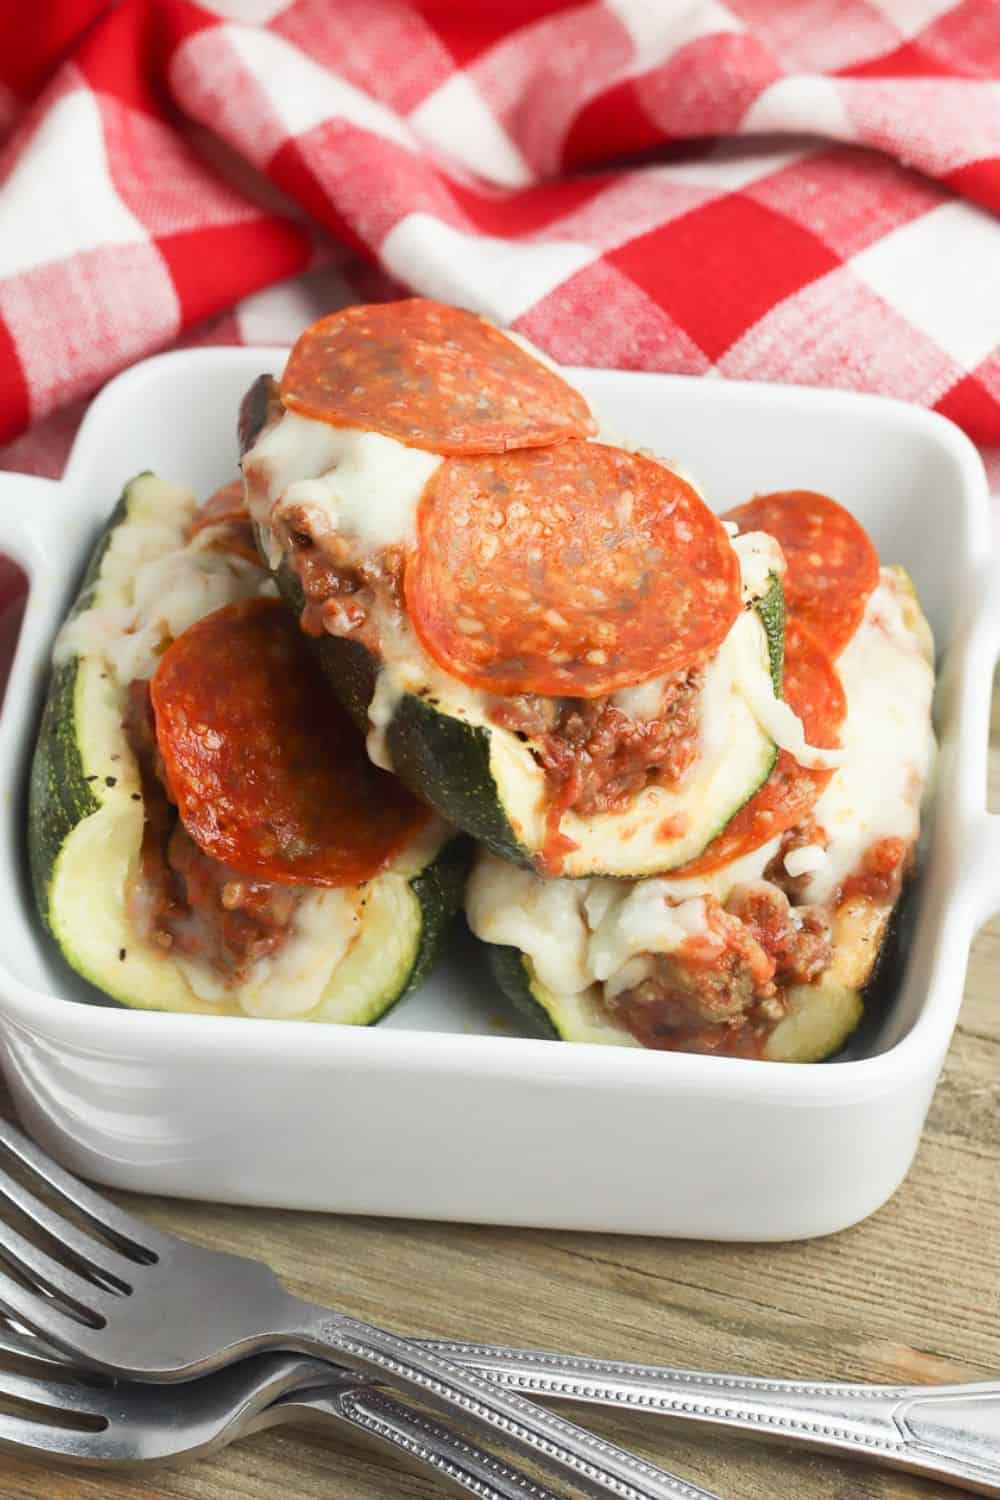 Ready for a delicious low-carb meal idea? This Stuffed Pizza Zucchini Boats recipe is a perfect low carb dinner option or side dish. This easy zucchini recipe is perfect for summer. #zucchini #lowcarbrecipe #zucchiniboats